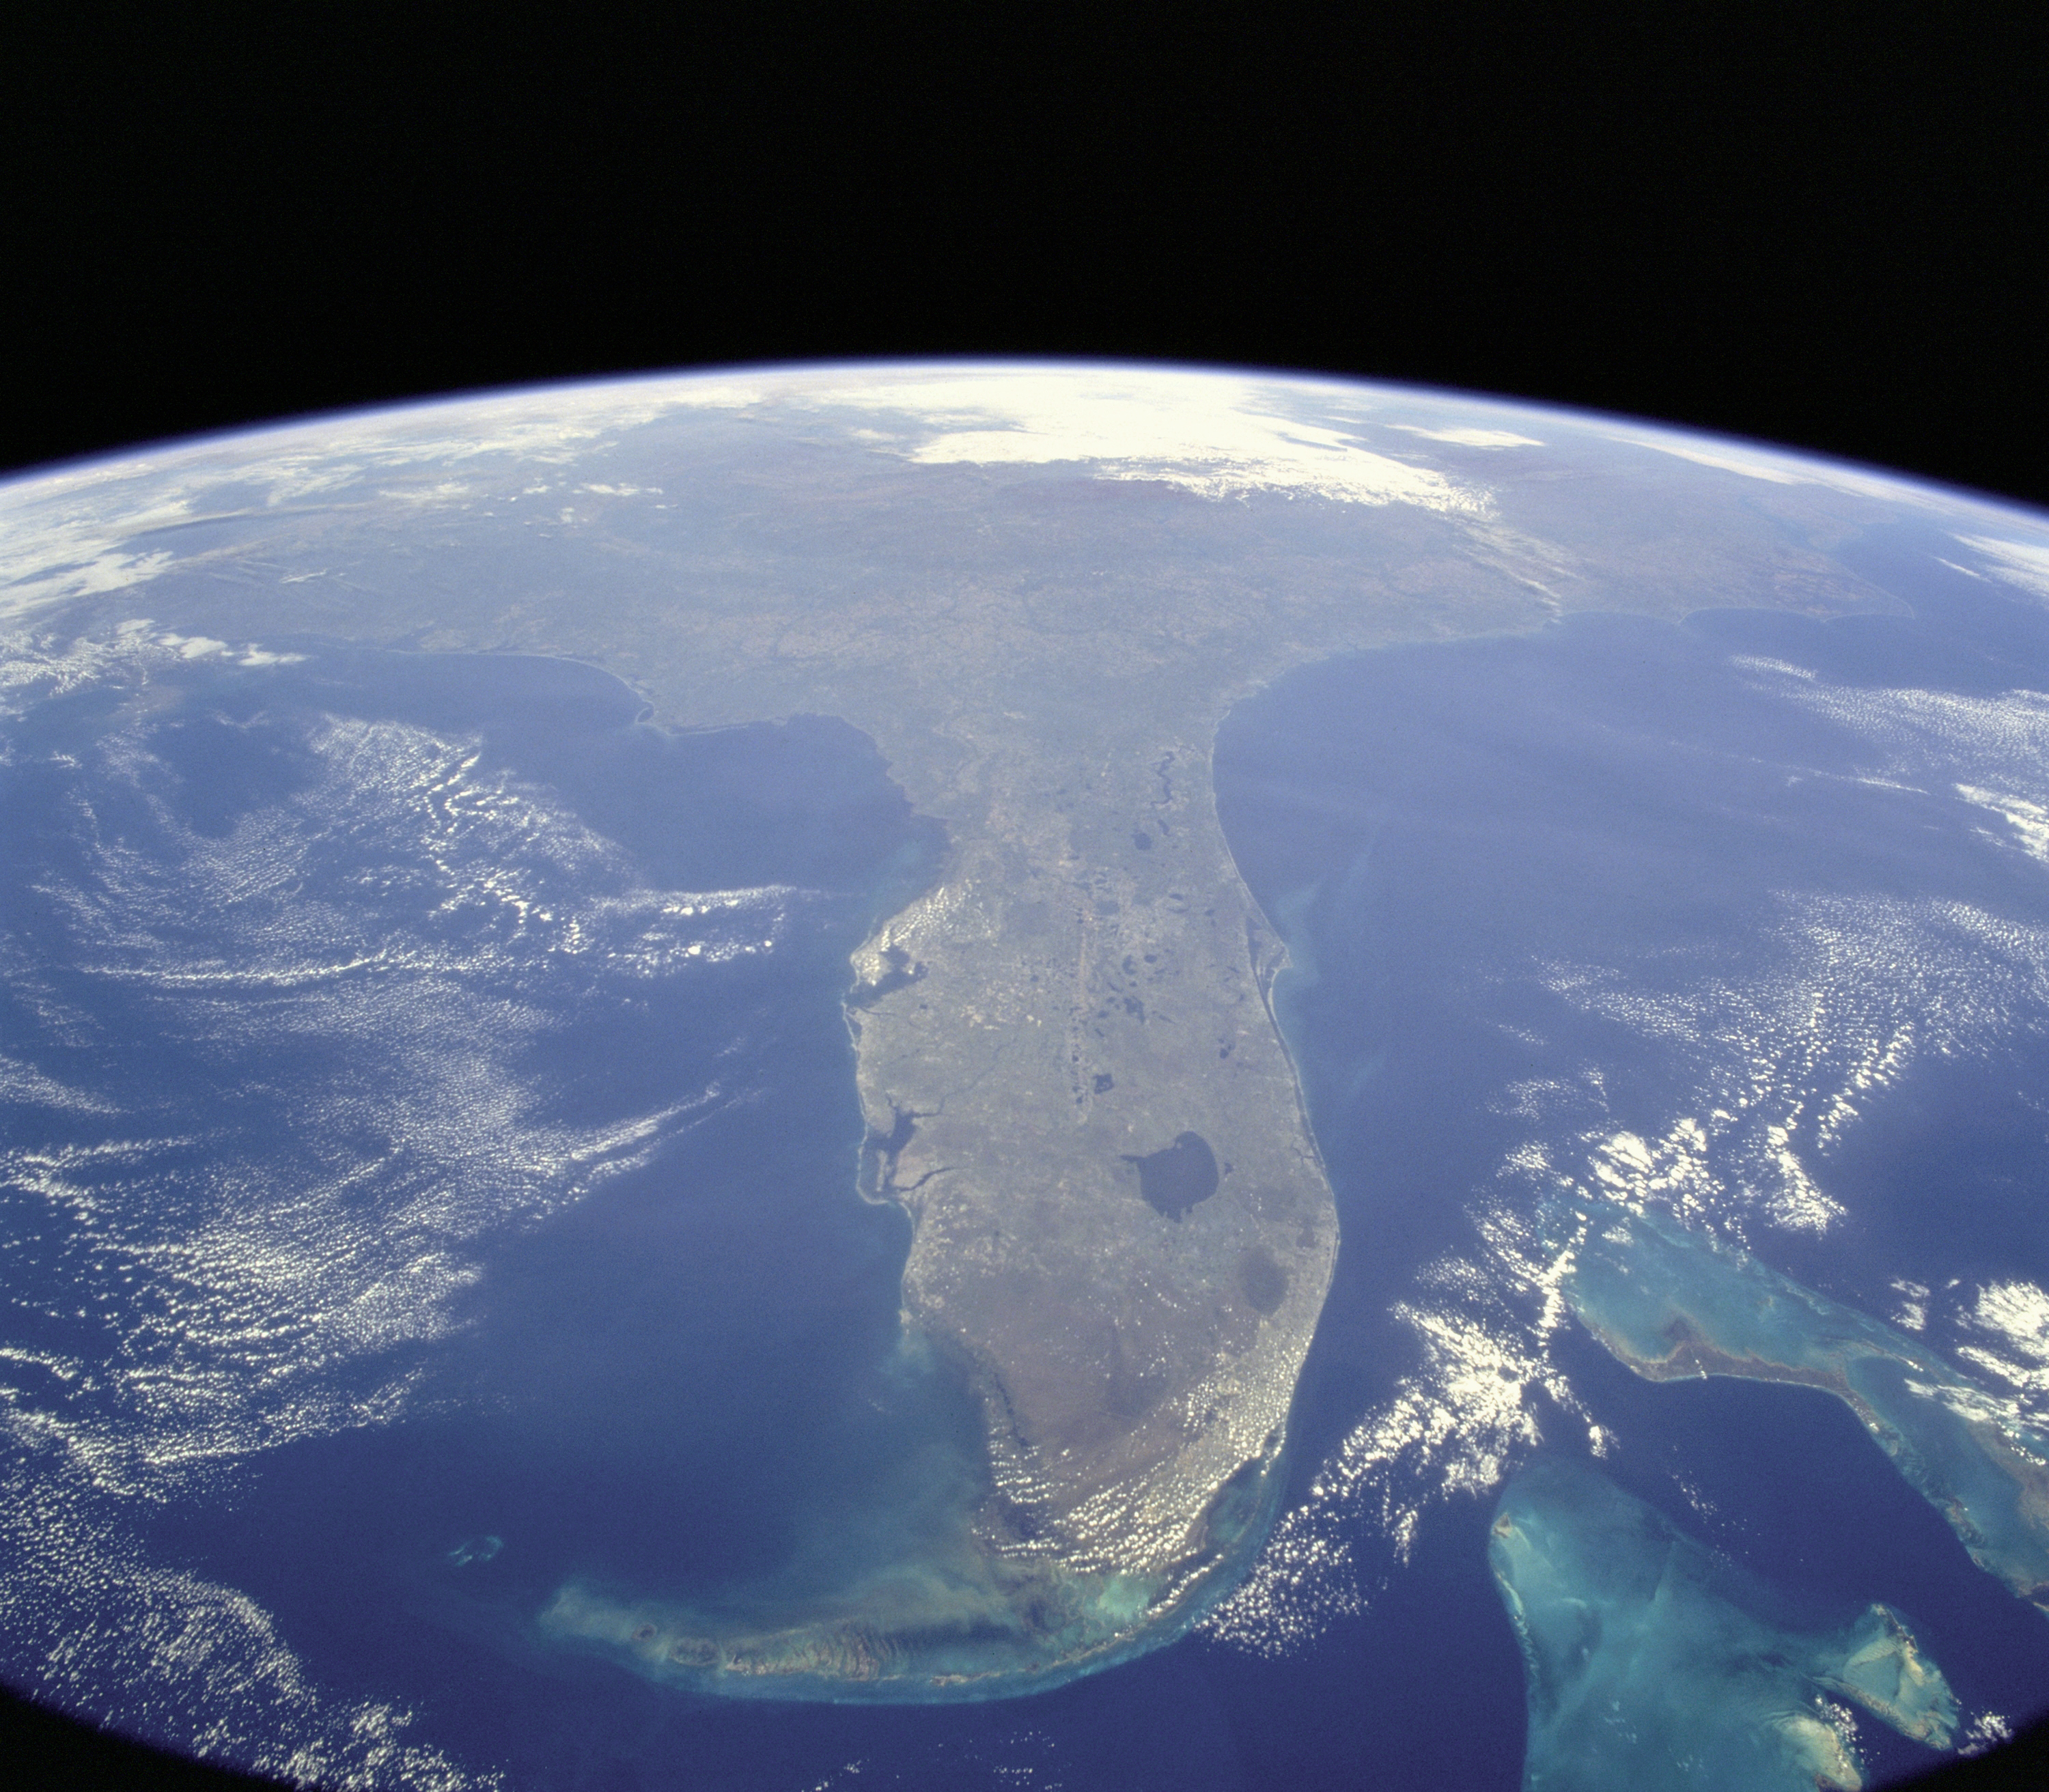 https://upload.wikimedia.org/wikipedia/commons/2/2e/STS-95_Florida_From_Space.jpg